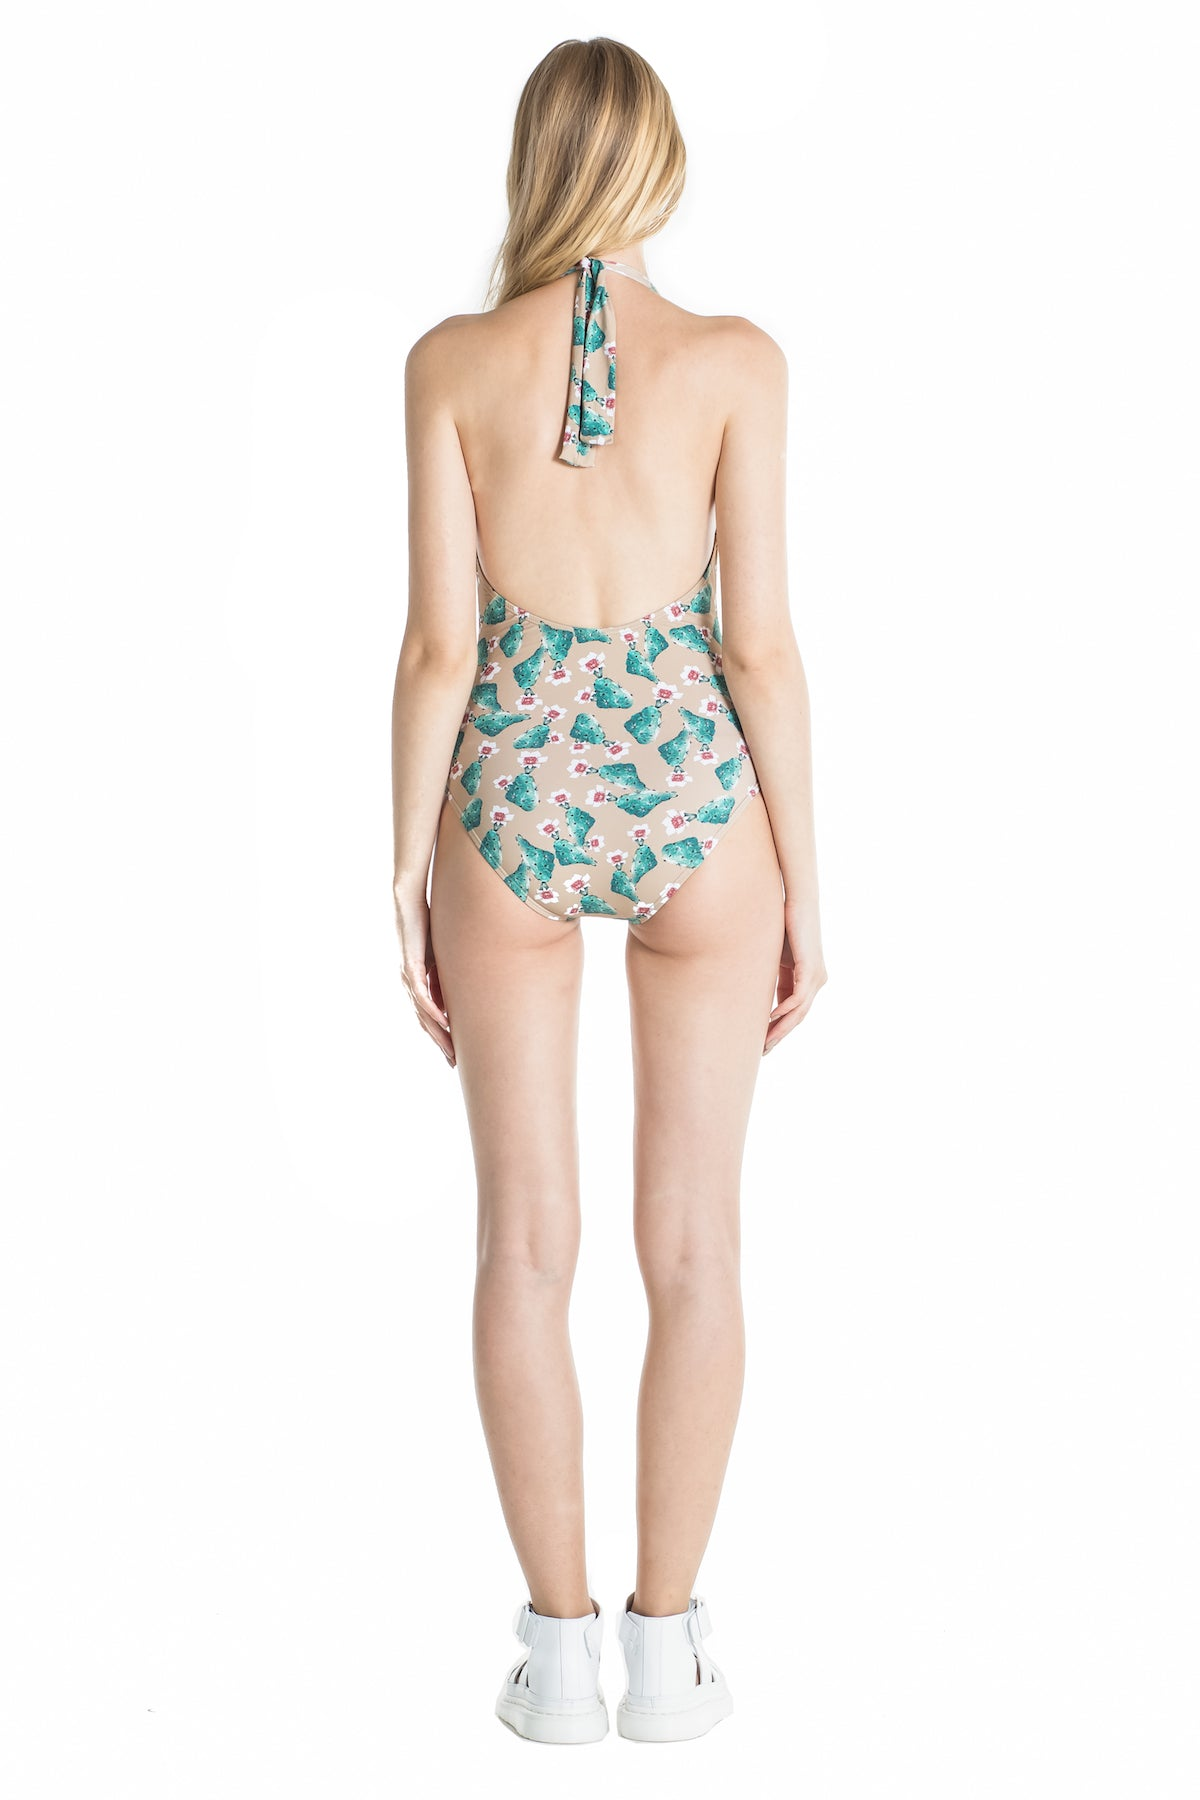 Back of Marina halter top swimsuit in Cactus.